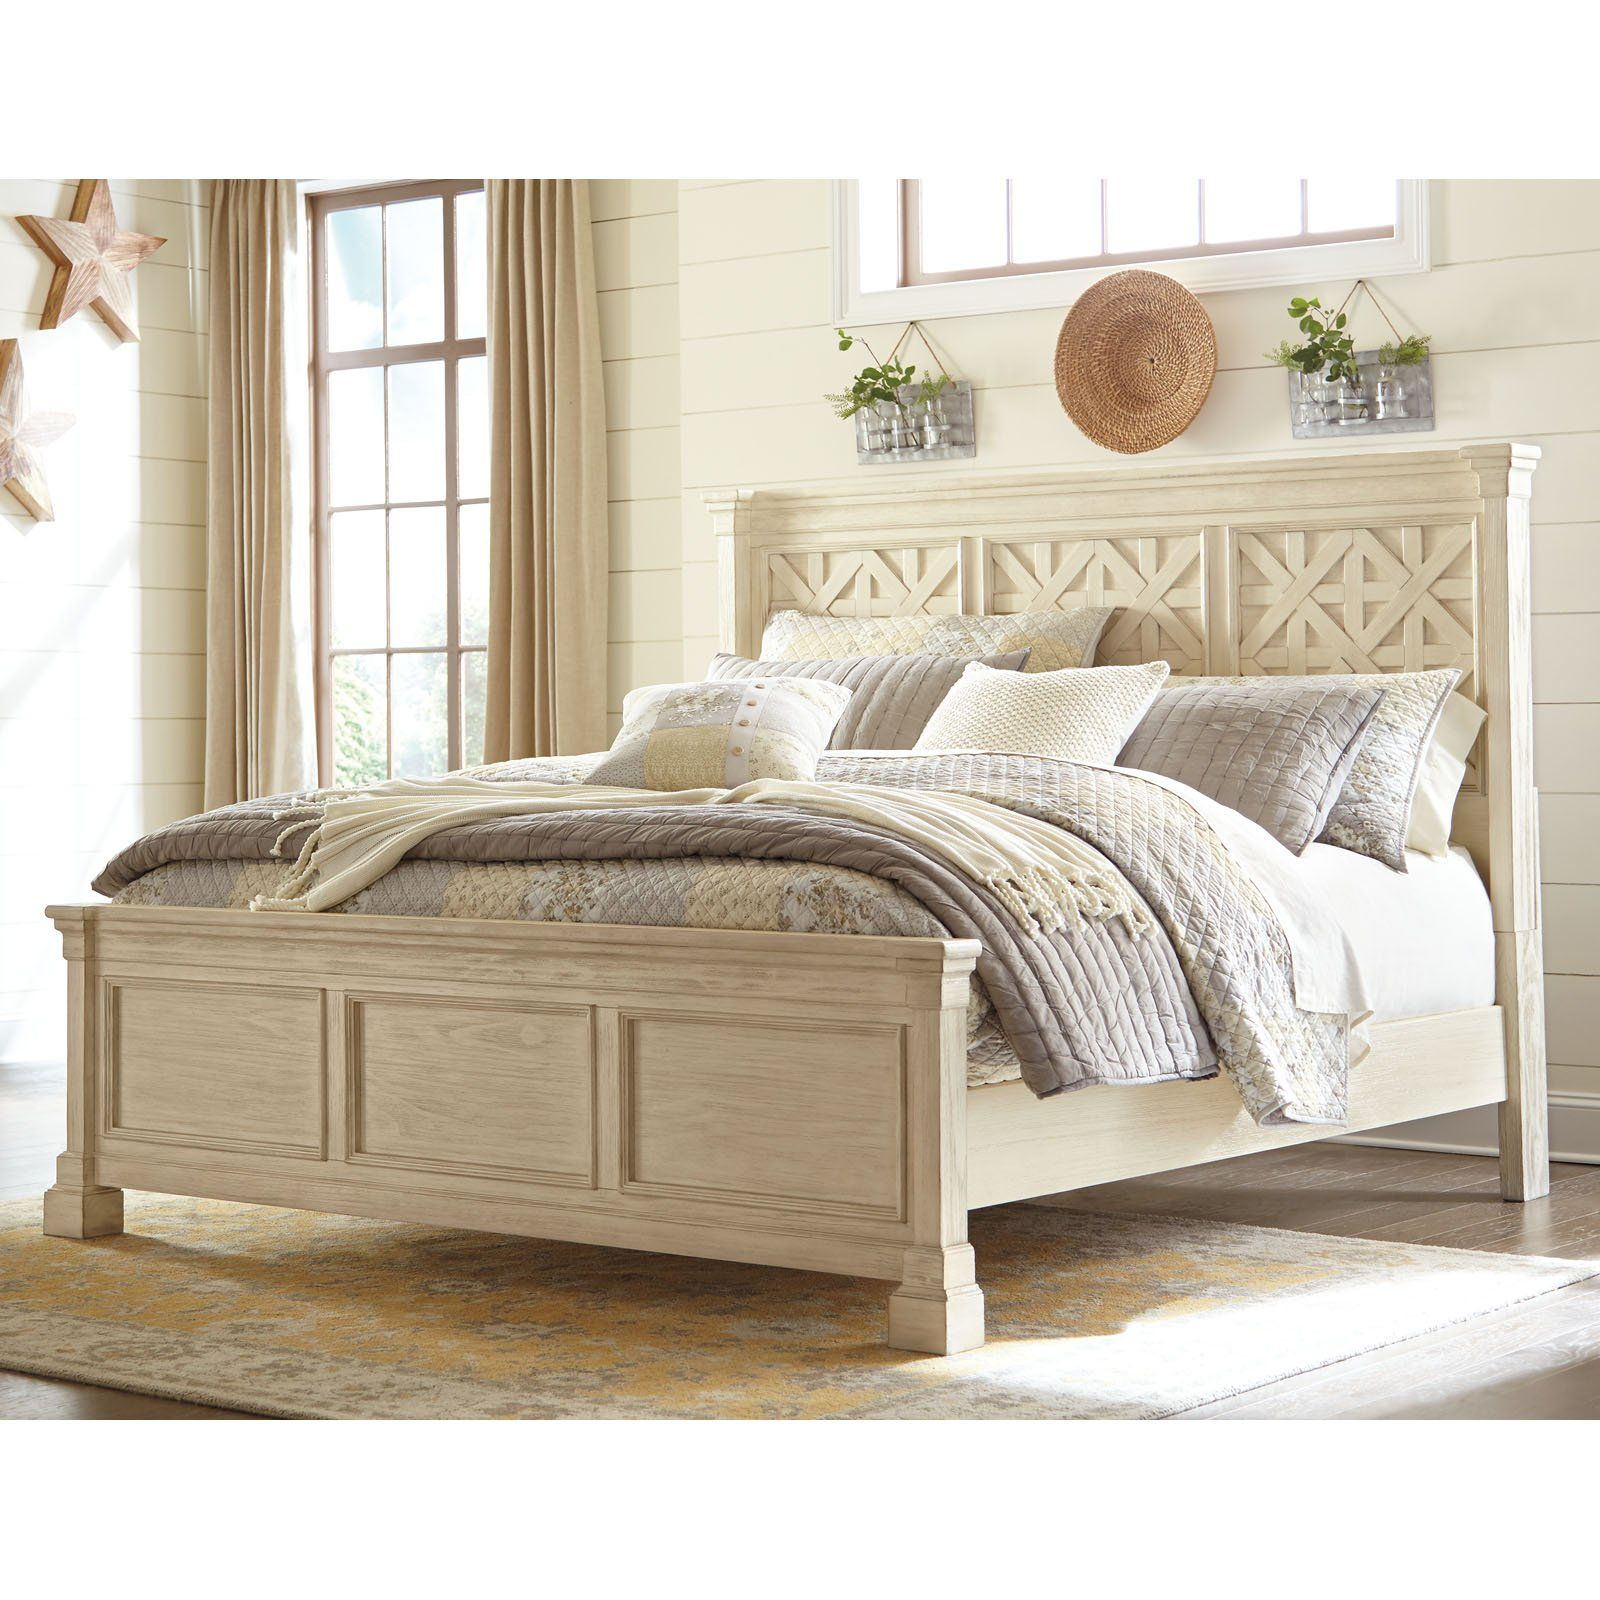 Best Signature Design By Ashley Bolanburg Panel Bed Bedroom 400 x 300